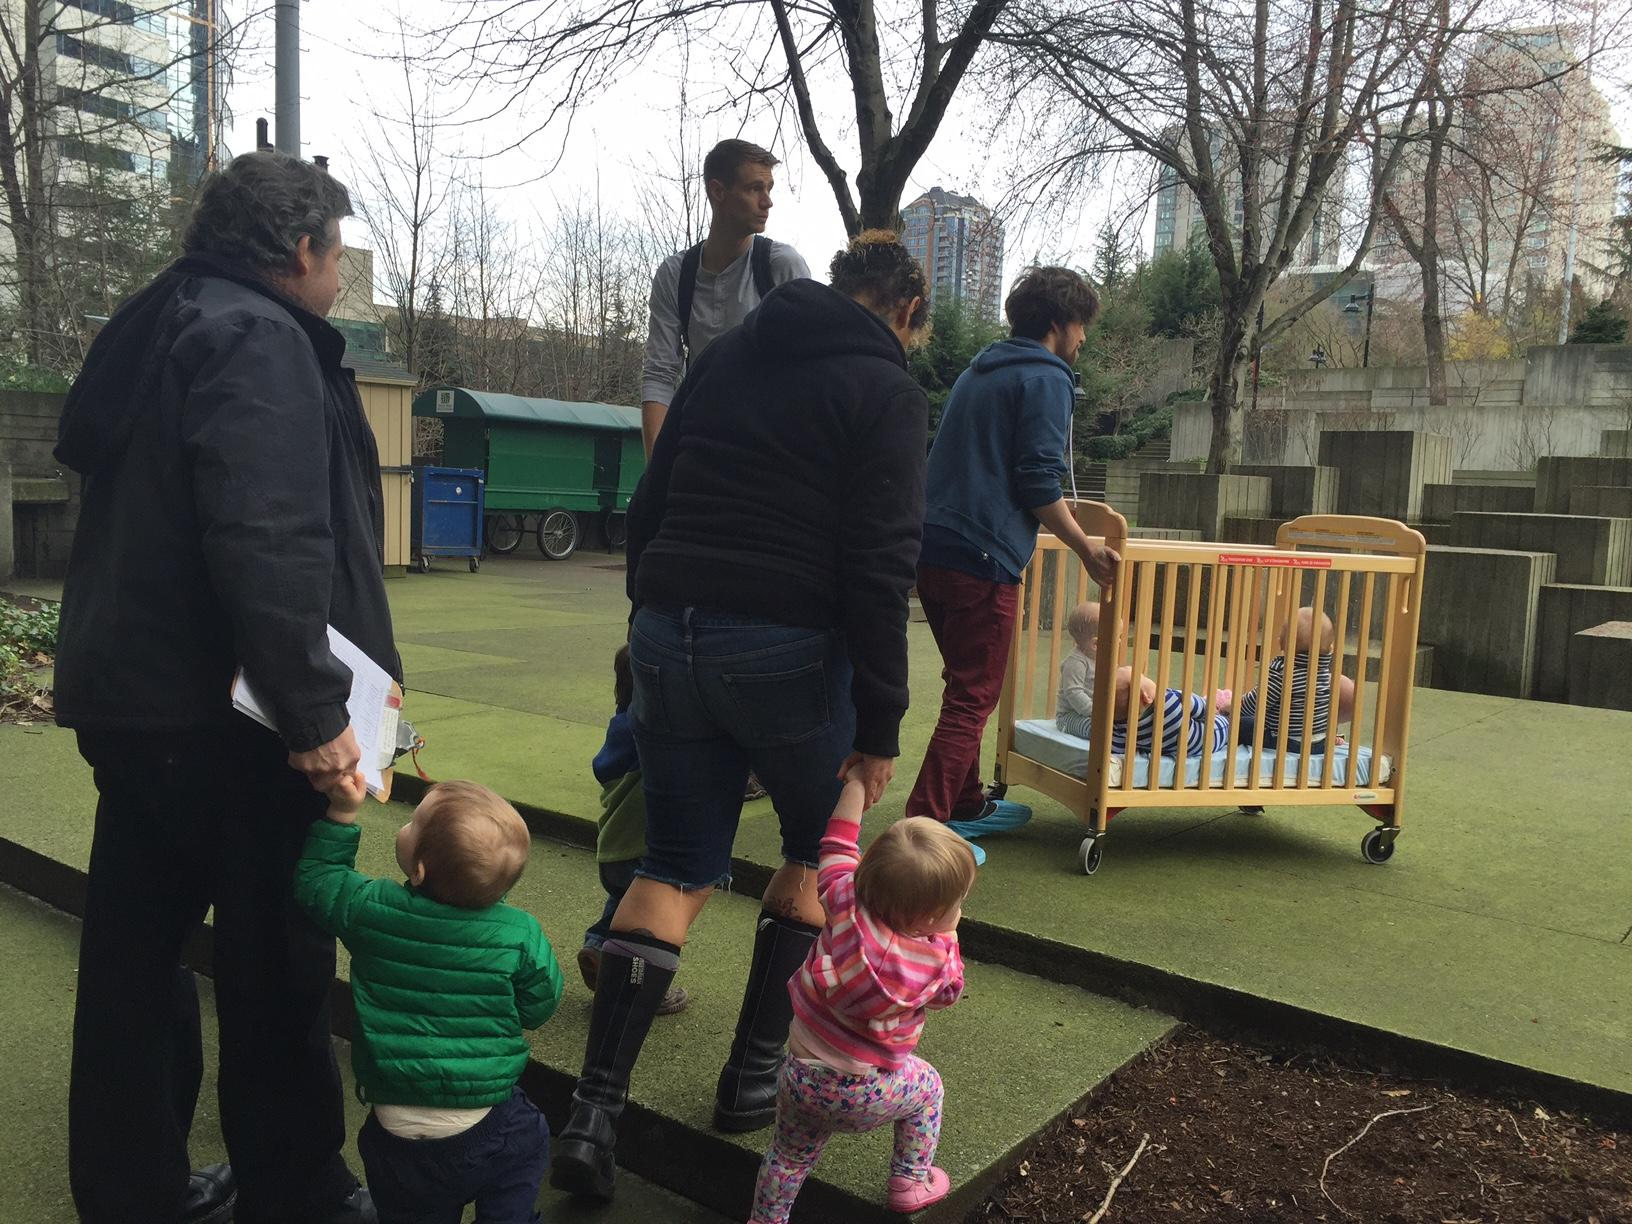 Baby cribs for daycare centers - Babies Are Led Or Wheeled Outside During The Monthly Fire Drill At Green Tree Early Learning Center In Seattle